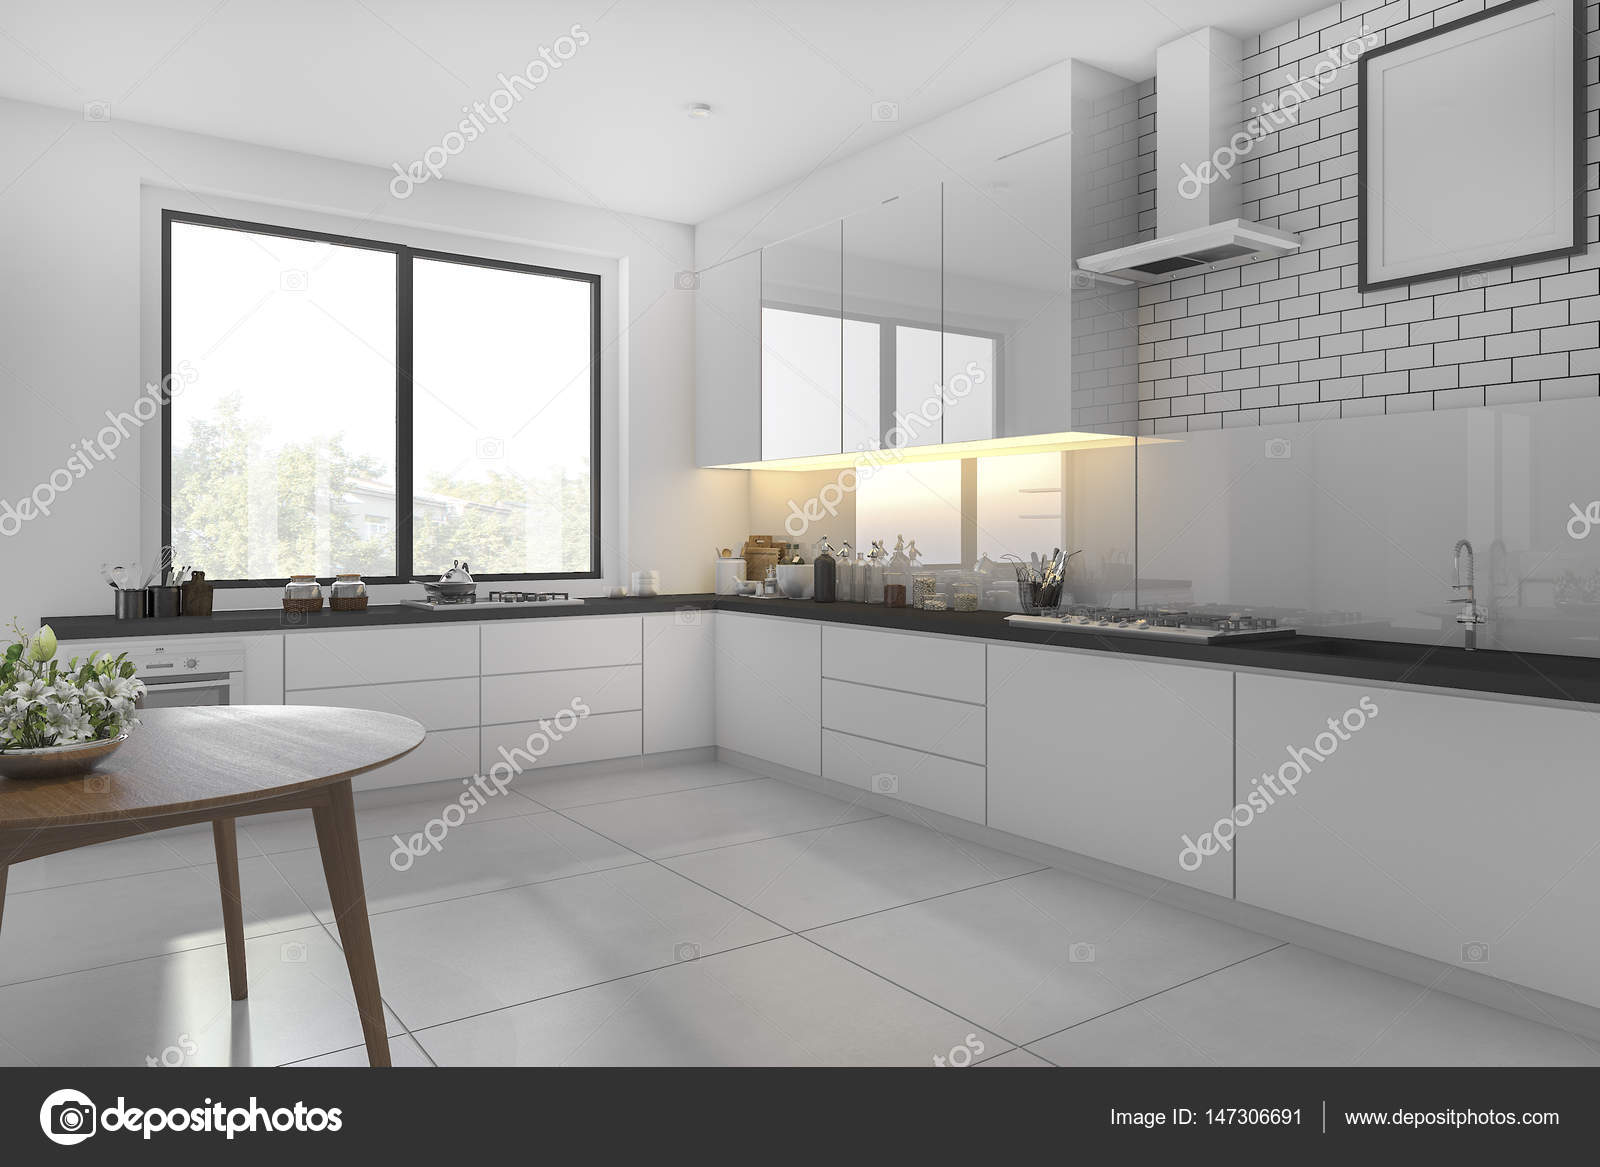 small kitchen table set booth plans 3d 呈现白色小厨房和餐桌 图库照片 c dit26978 147306691